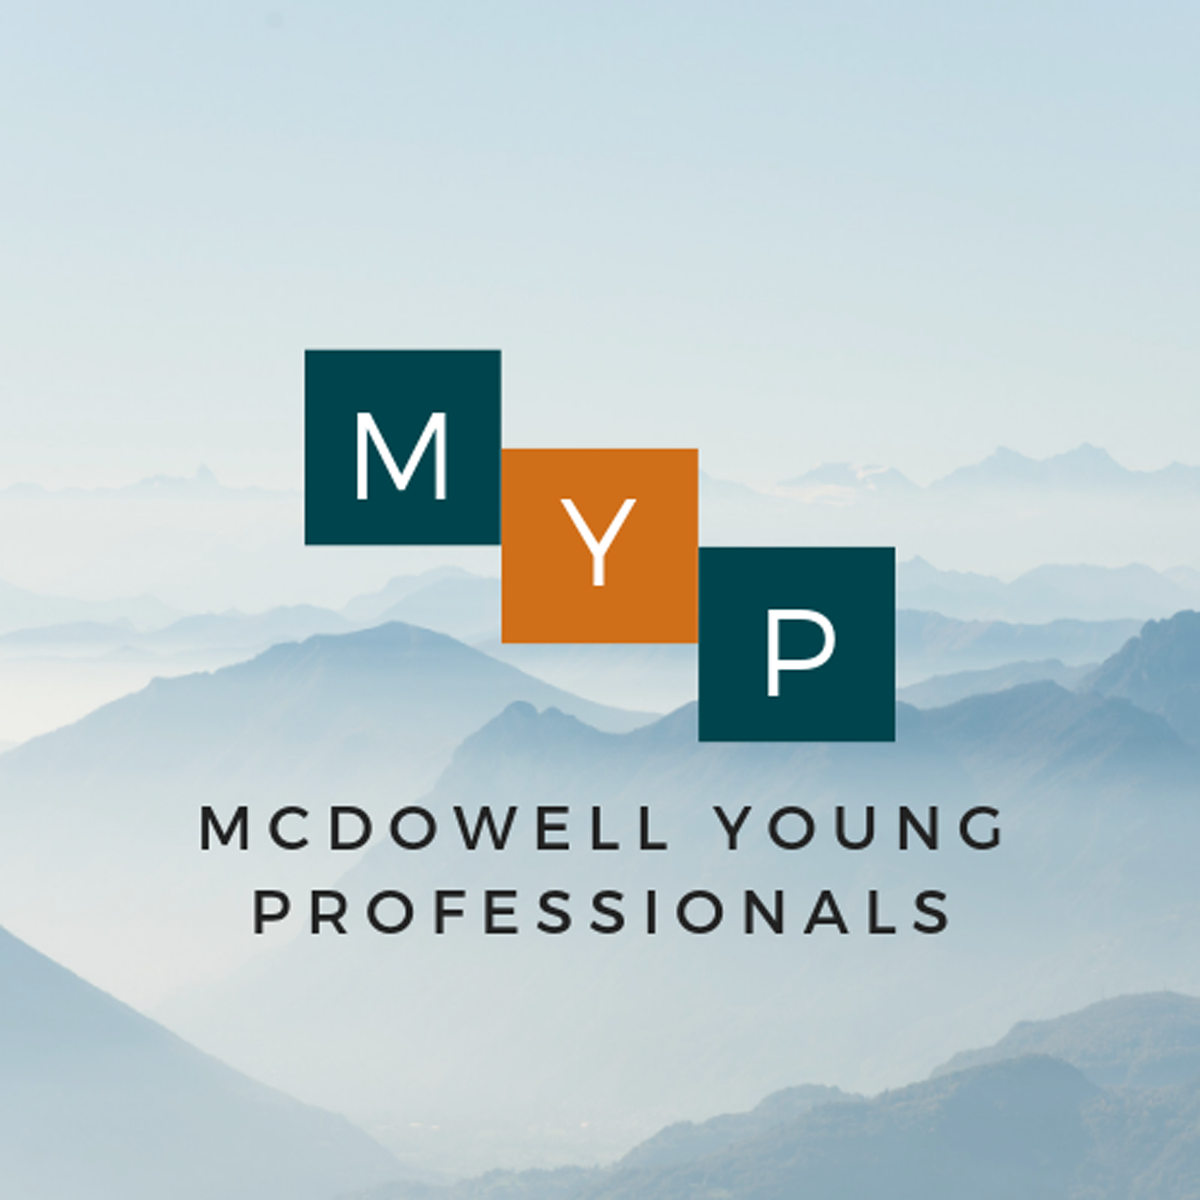 McDowell Young Professionals 1.png